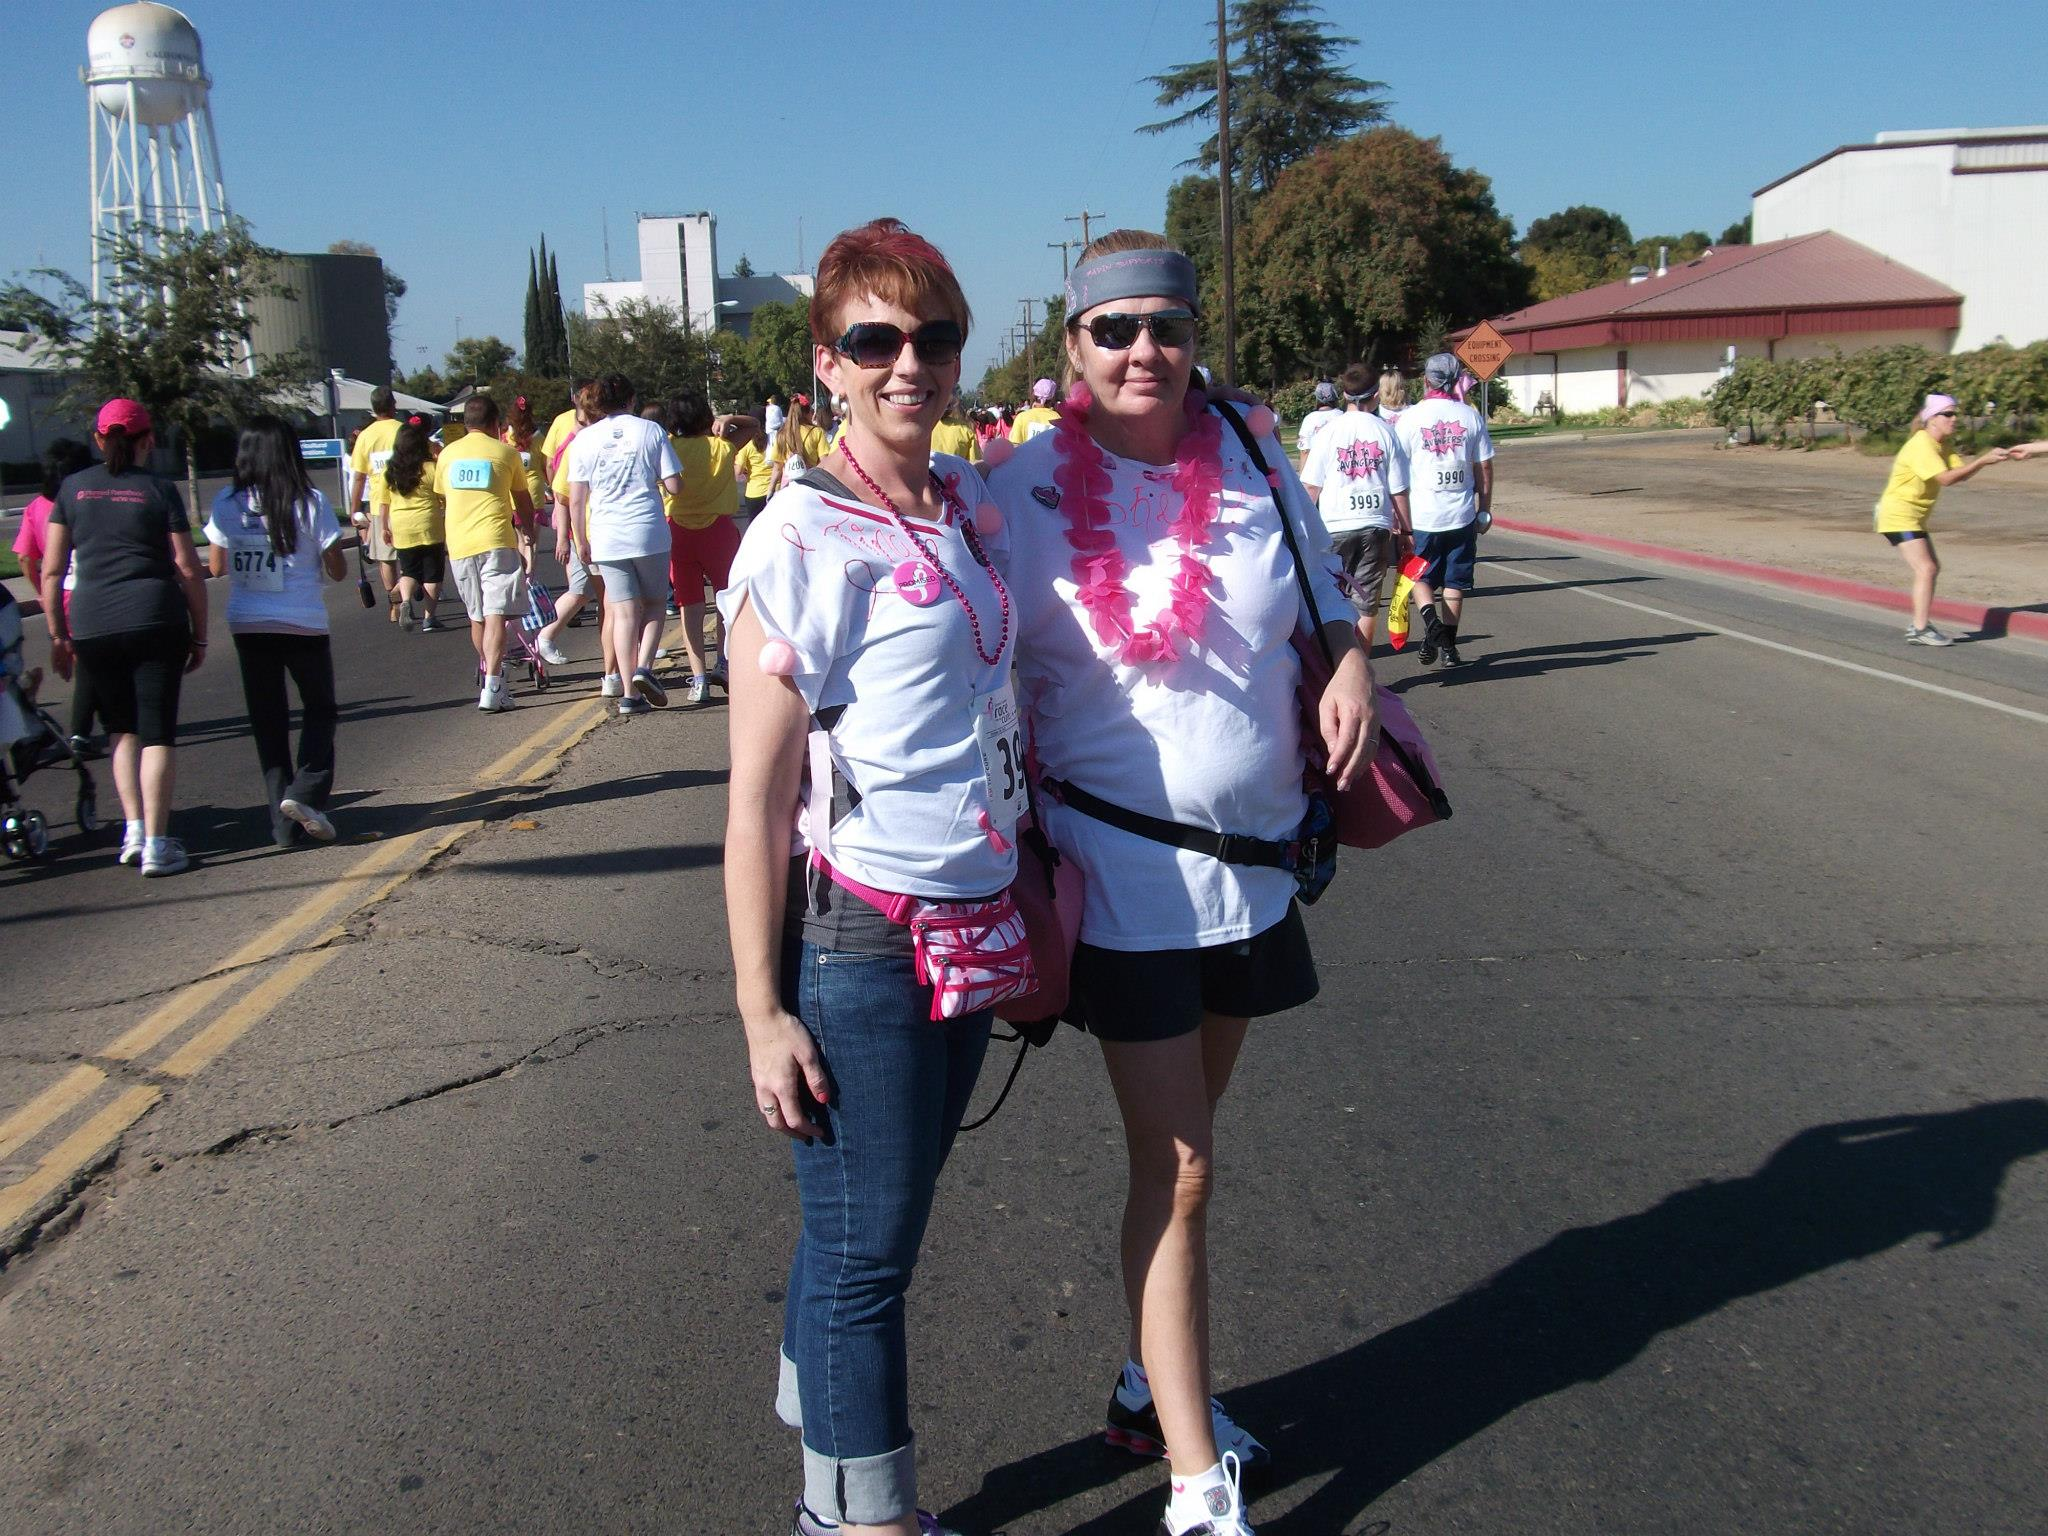 2013 Team Captain Tina Wynne with super-volunteer and fundraiser Shiela Moreno - Race for the Cure 2012 - photo courtesy of Tina Wynne